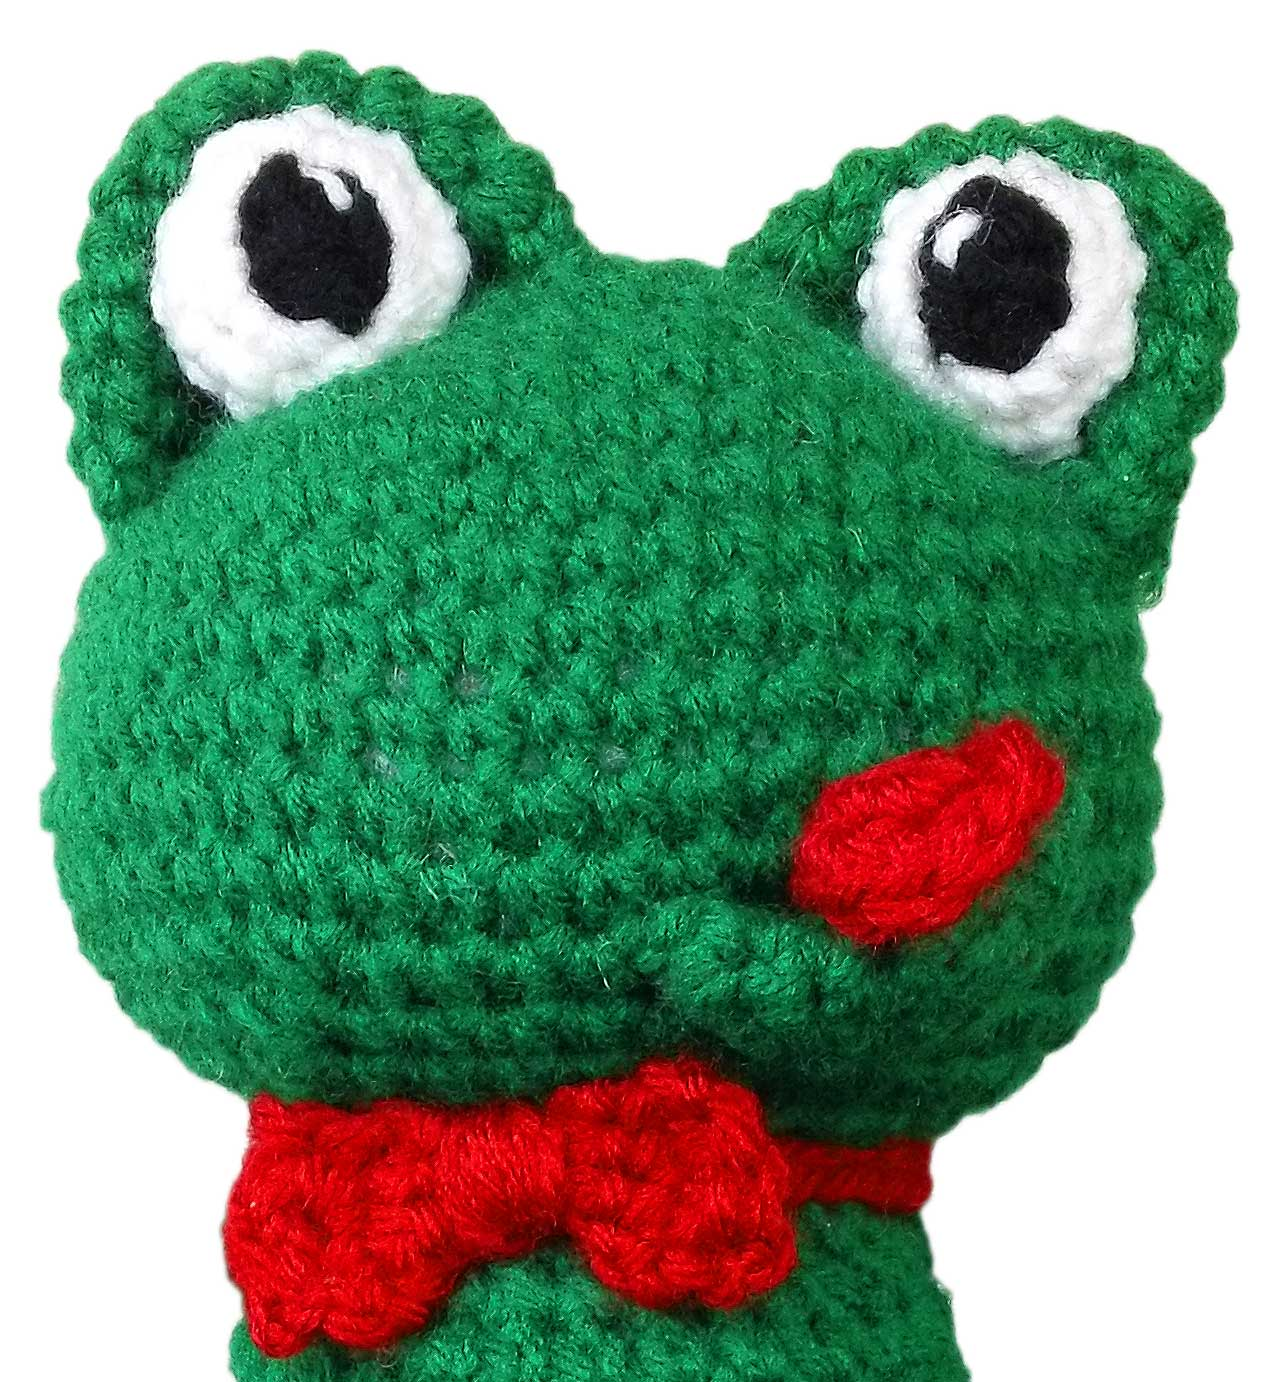 Crochet frog pattern fold circle in half and stitch open ends together bankloansurffo Gallery